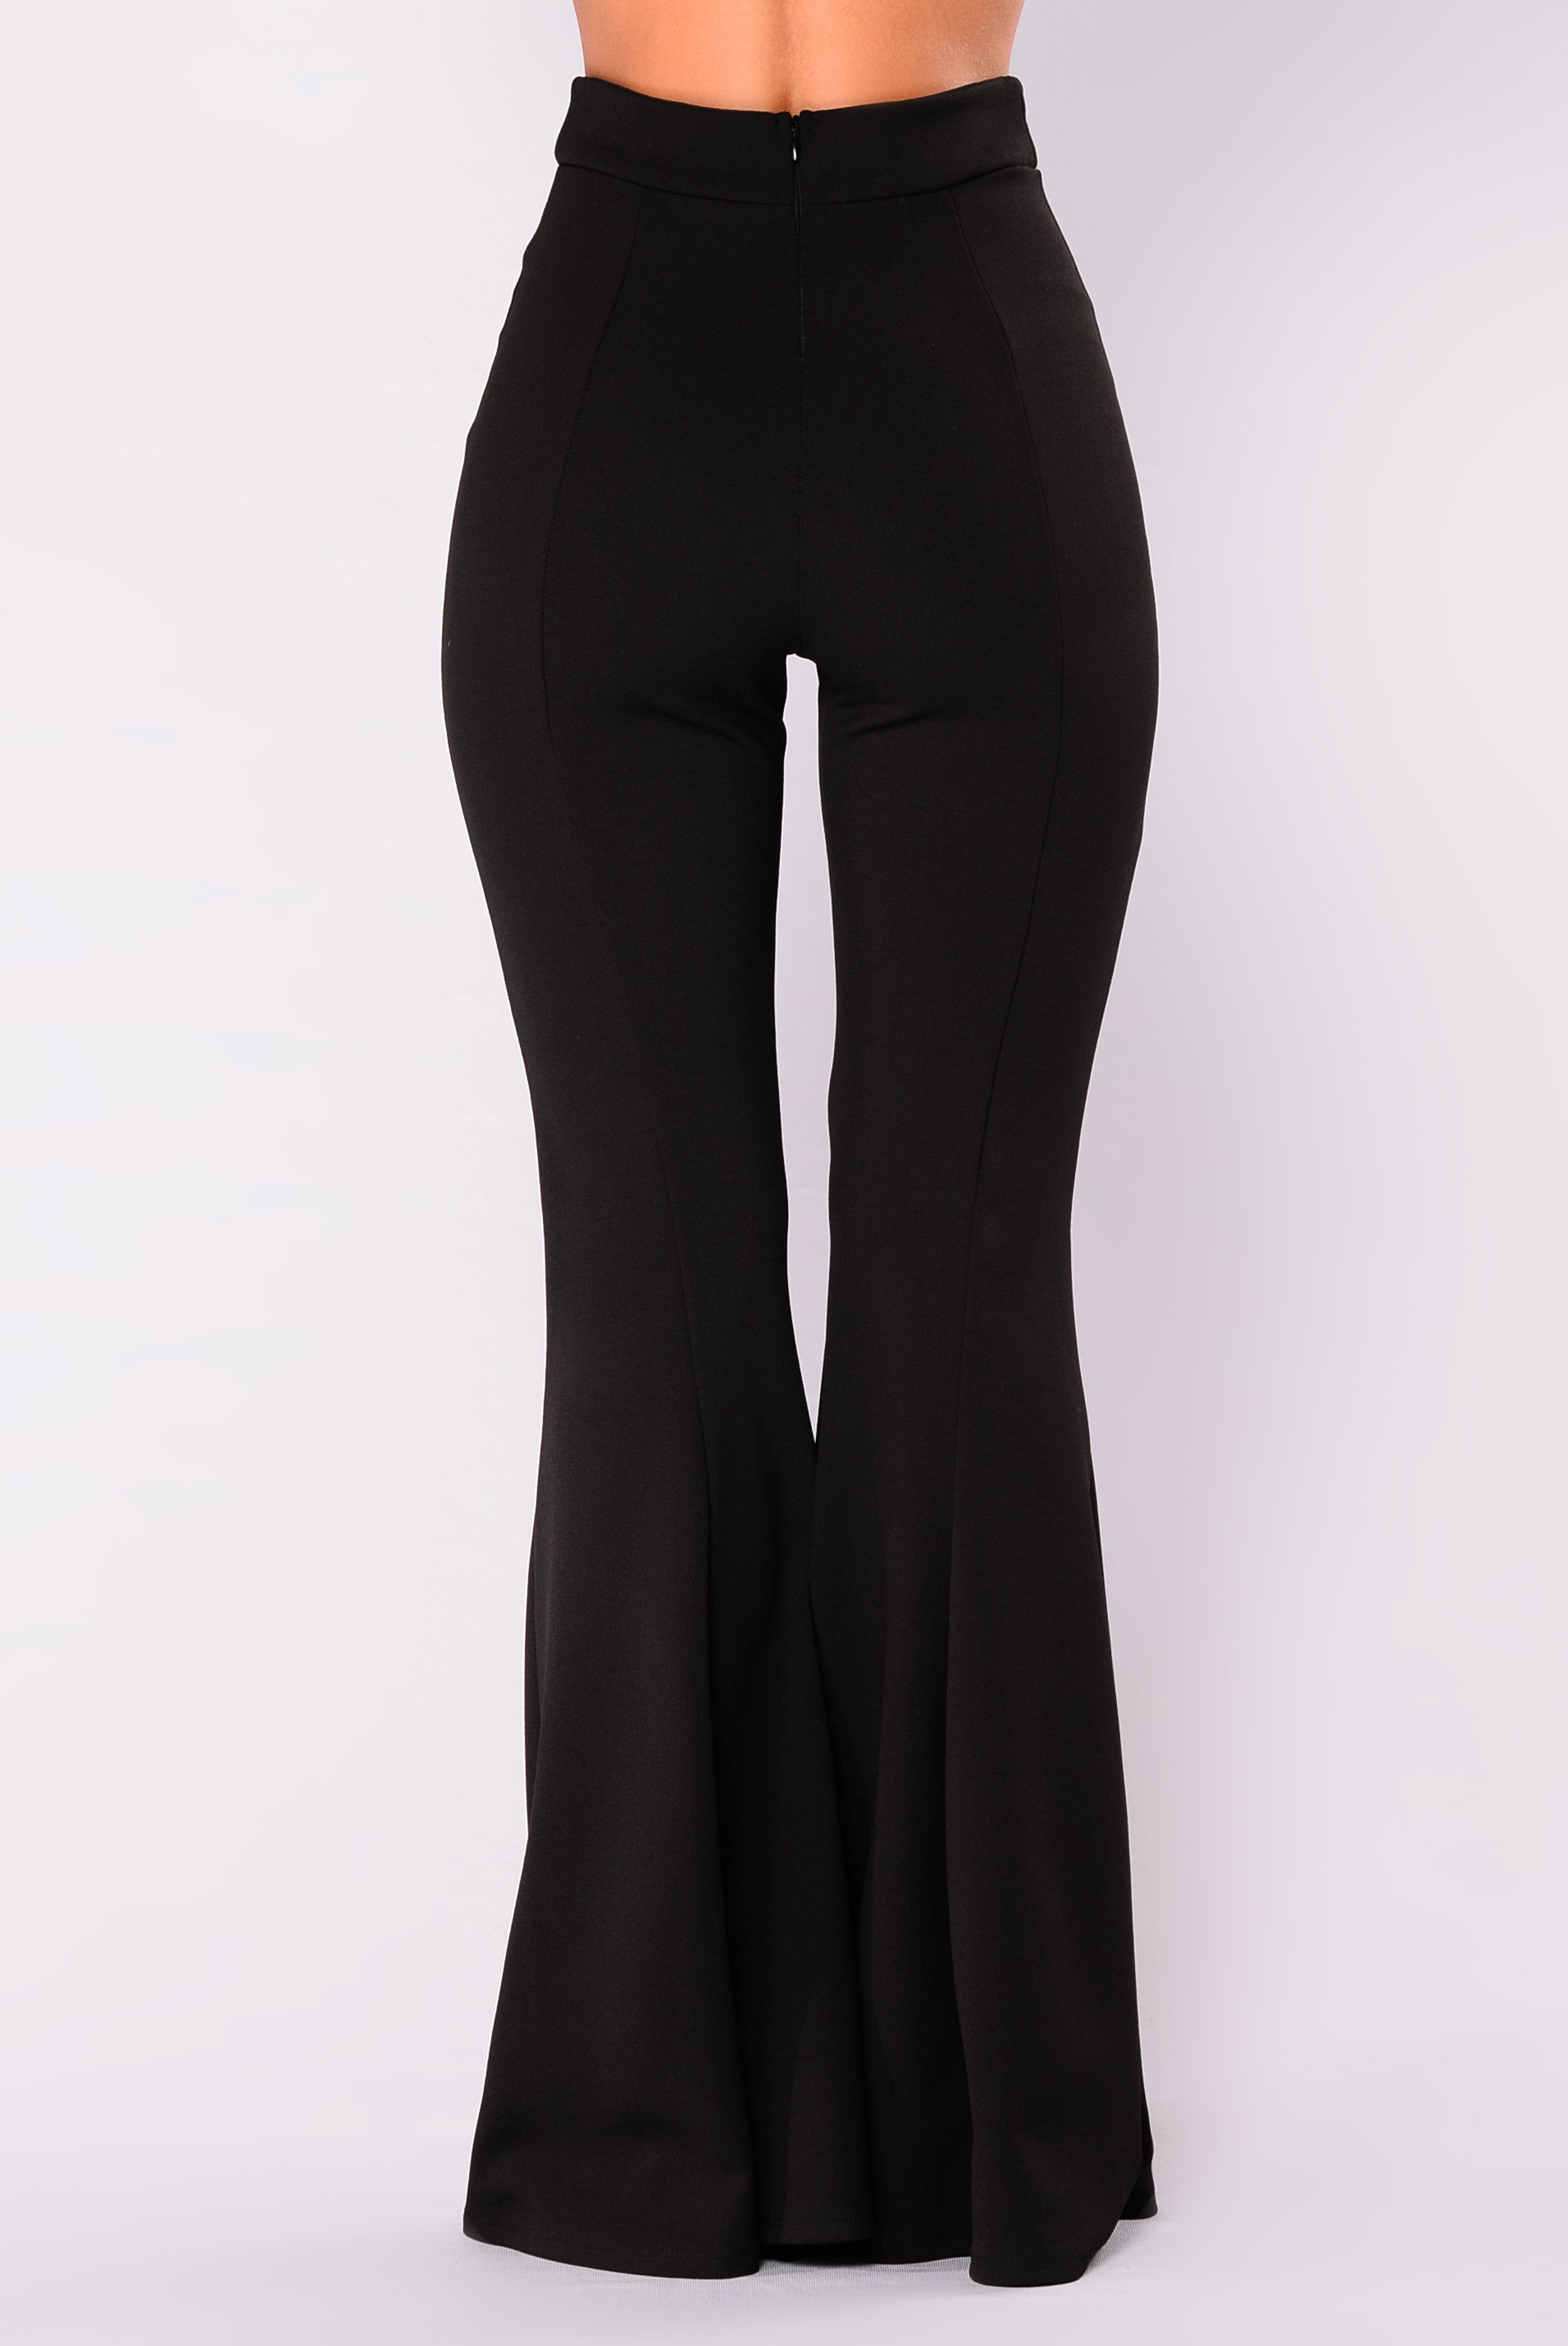 The Aerie Chill Flare Pant live up to their name and are a style of womens flared pants that are practical and very relaxing to wear. They use a soft stretch fabric blending spandex with cotton and come in a true black .